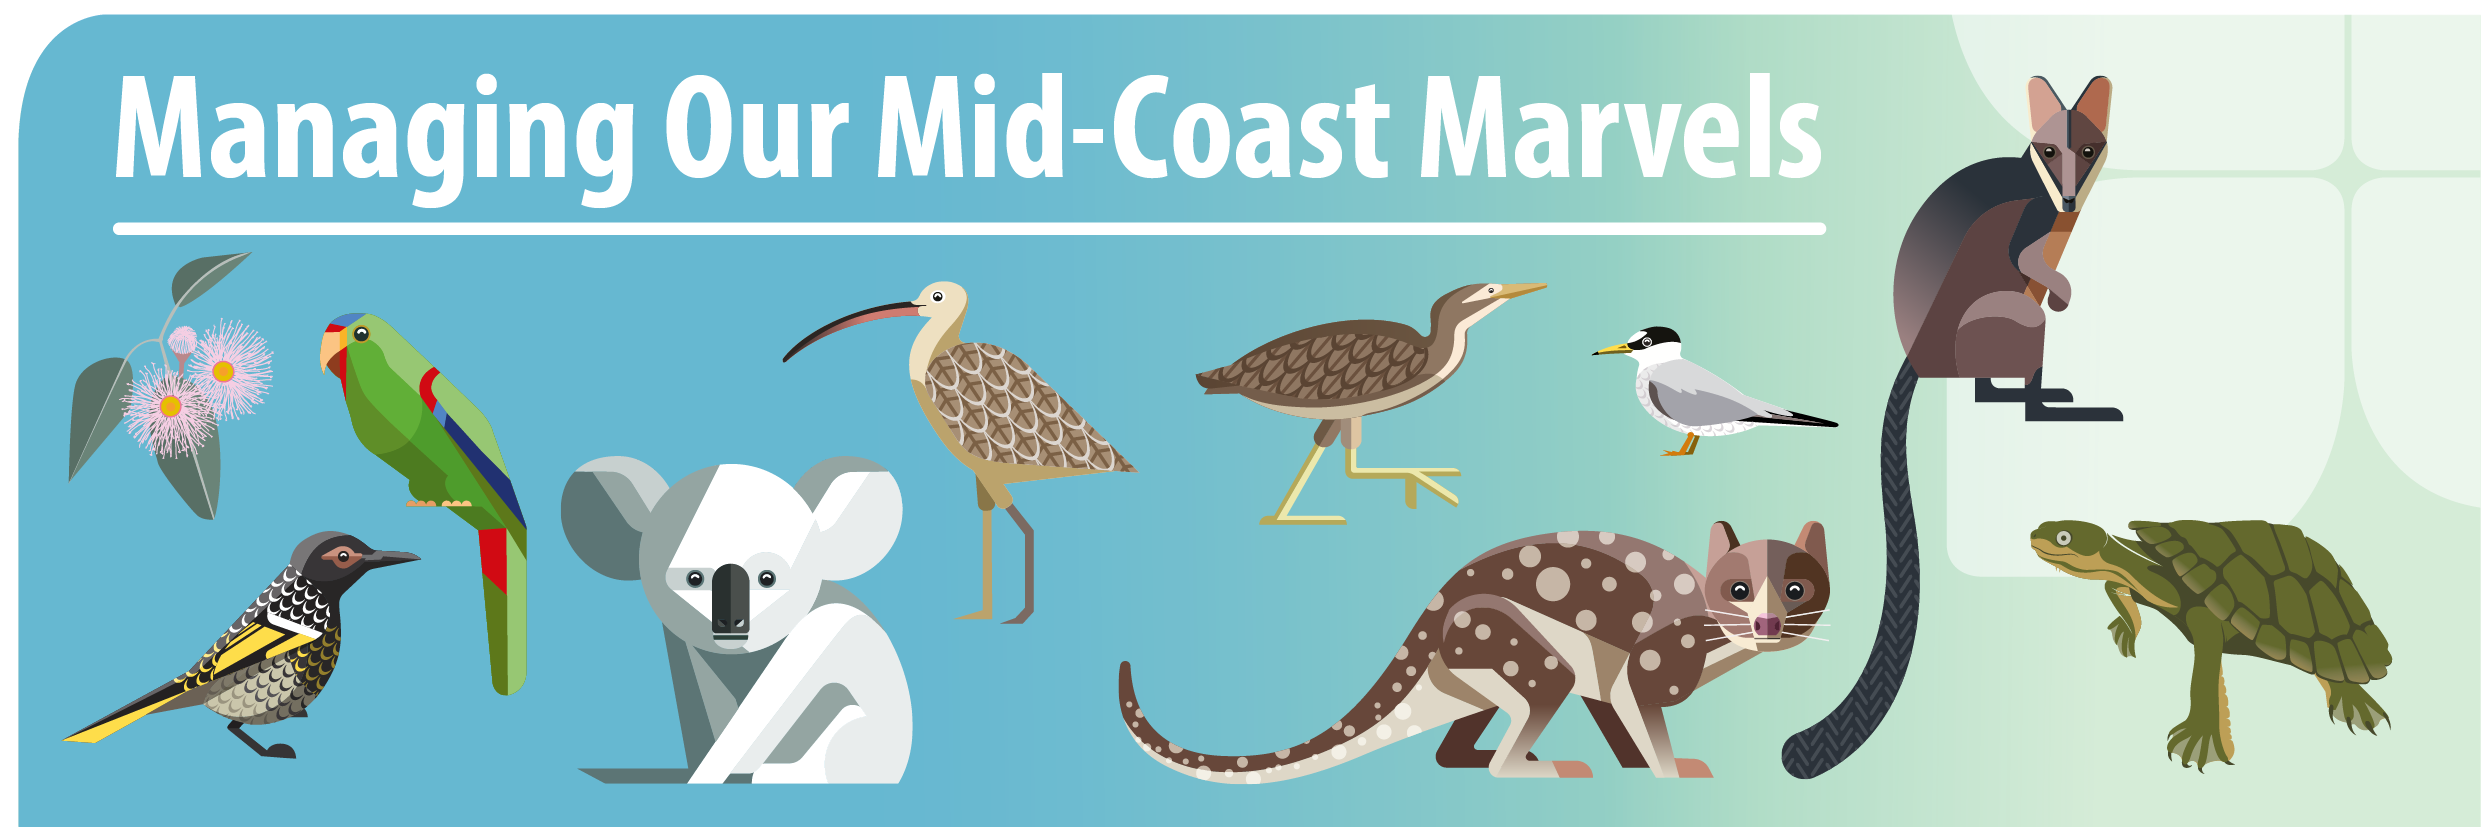 Managing Our Mid-Coast Marvels Banner